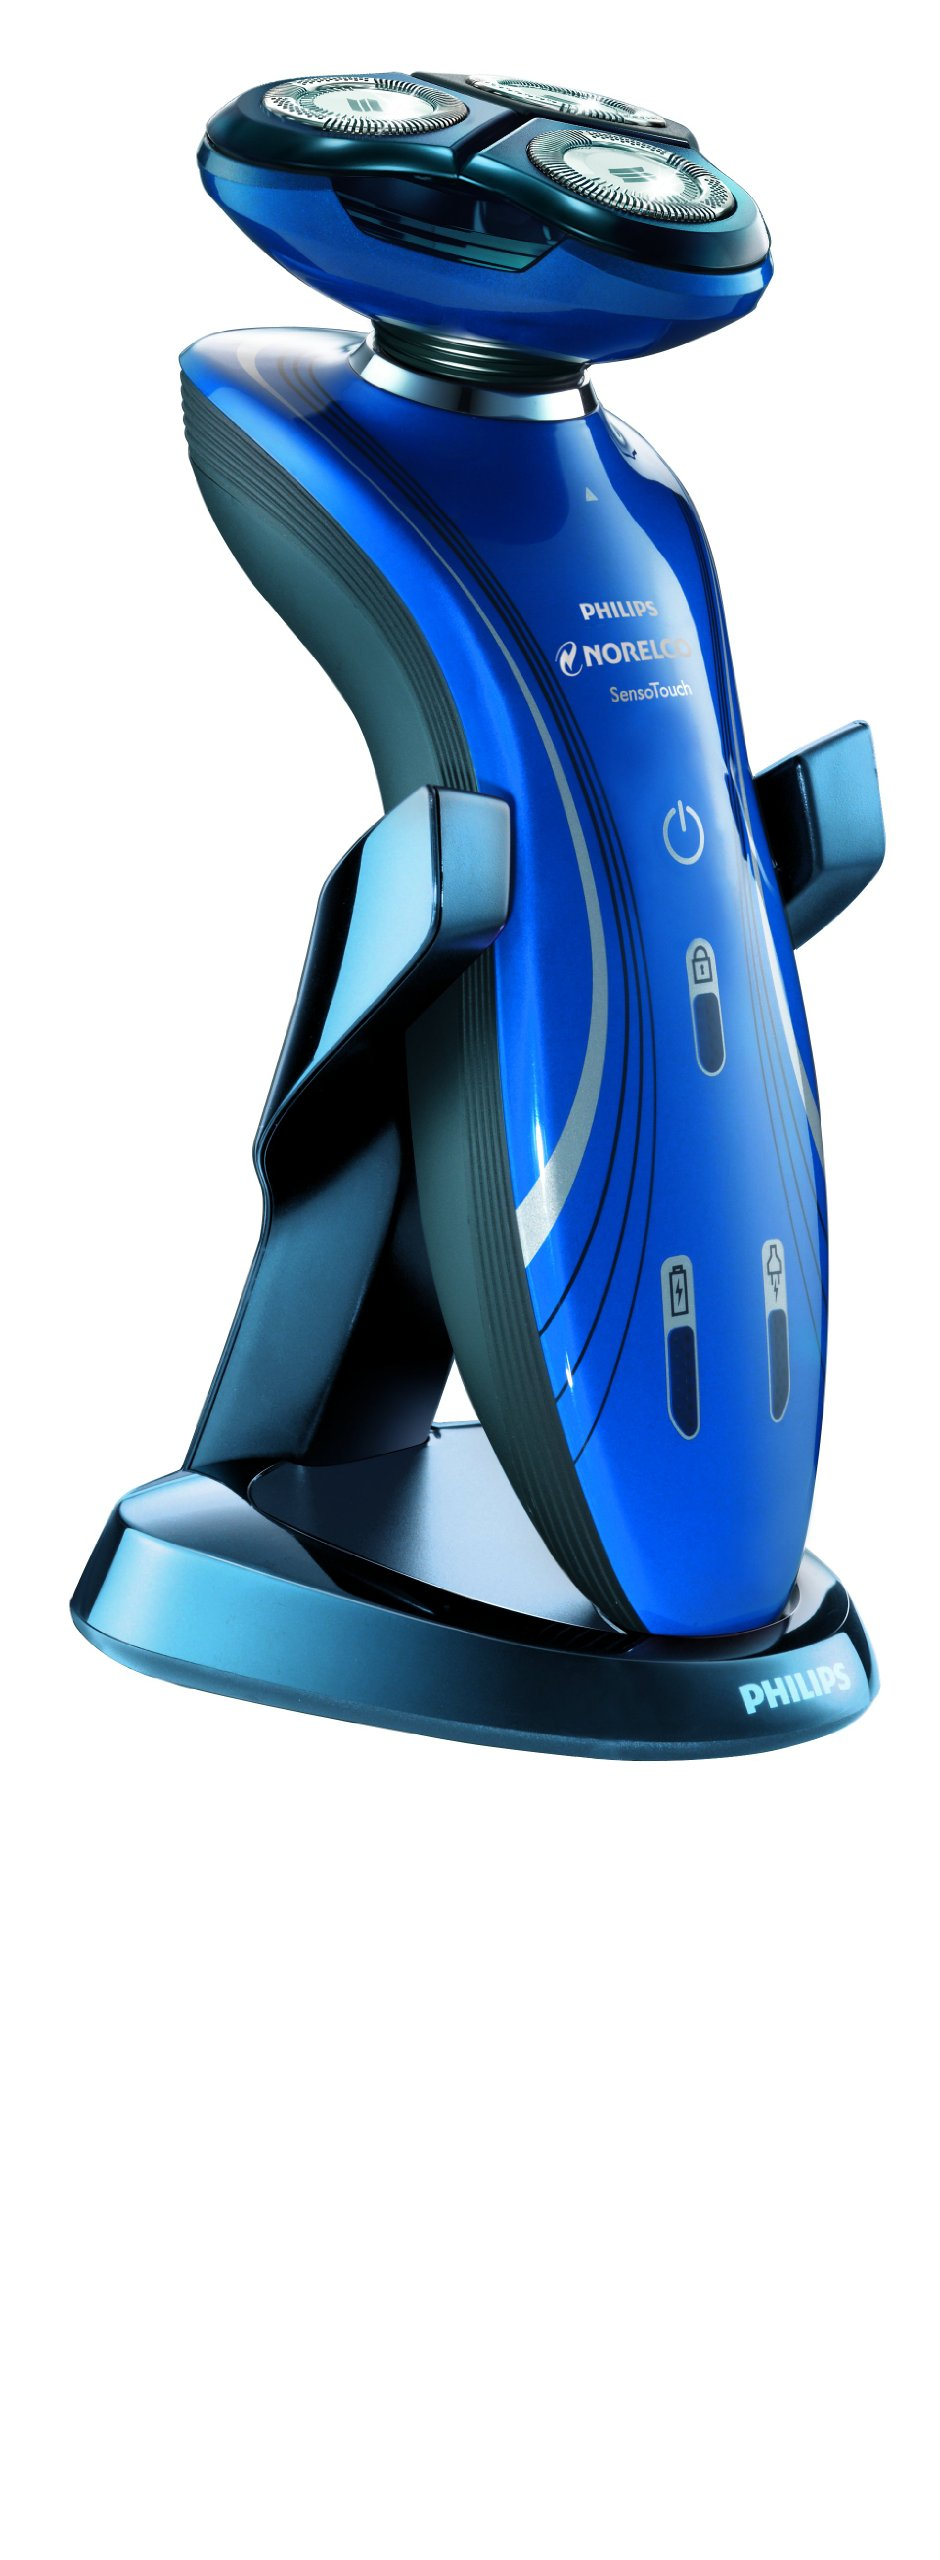 Philips Norelco 1150X/46 Shaver 6100 by Philips Norelco (Image #3)